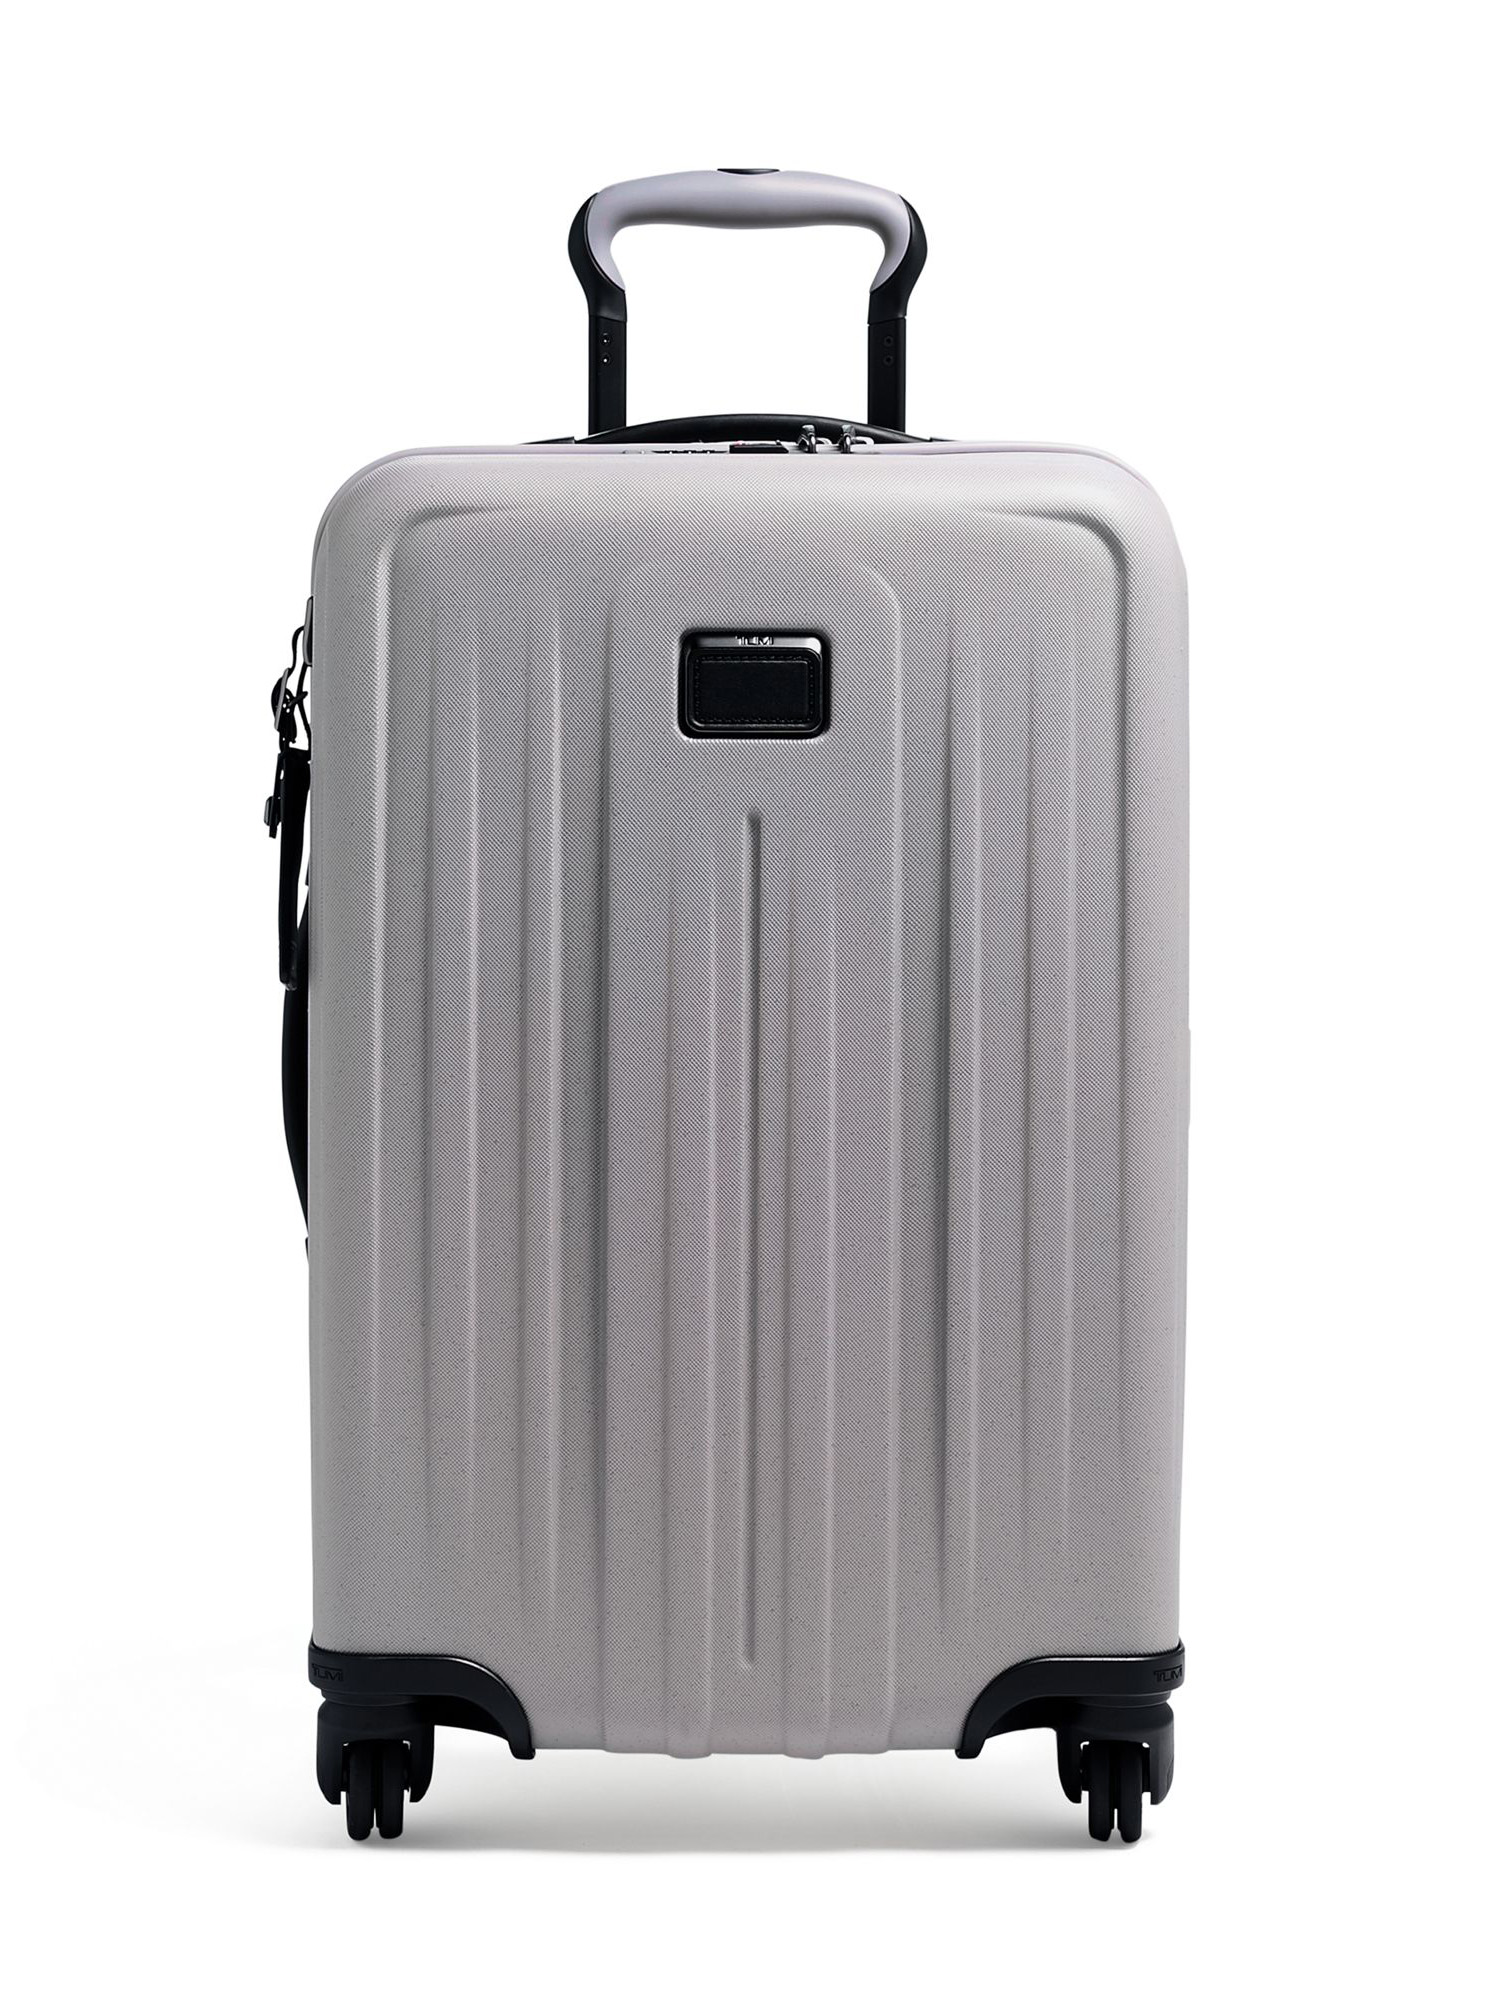 Best Places to Buy Luggage Online - Tumi